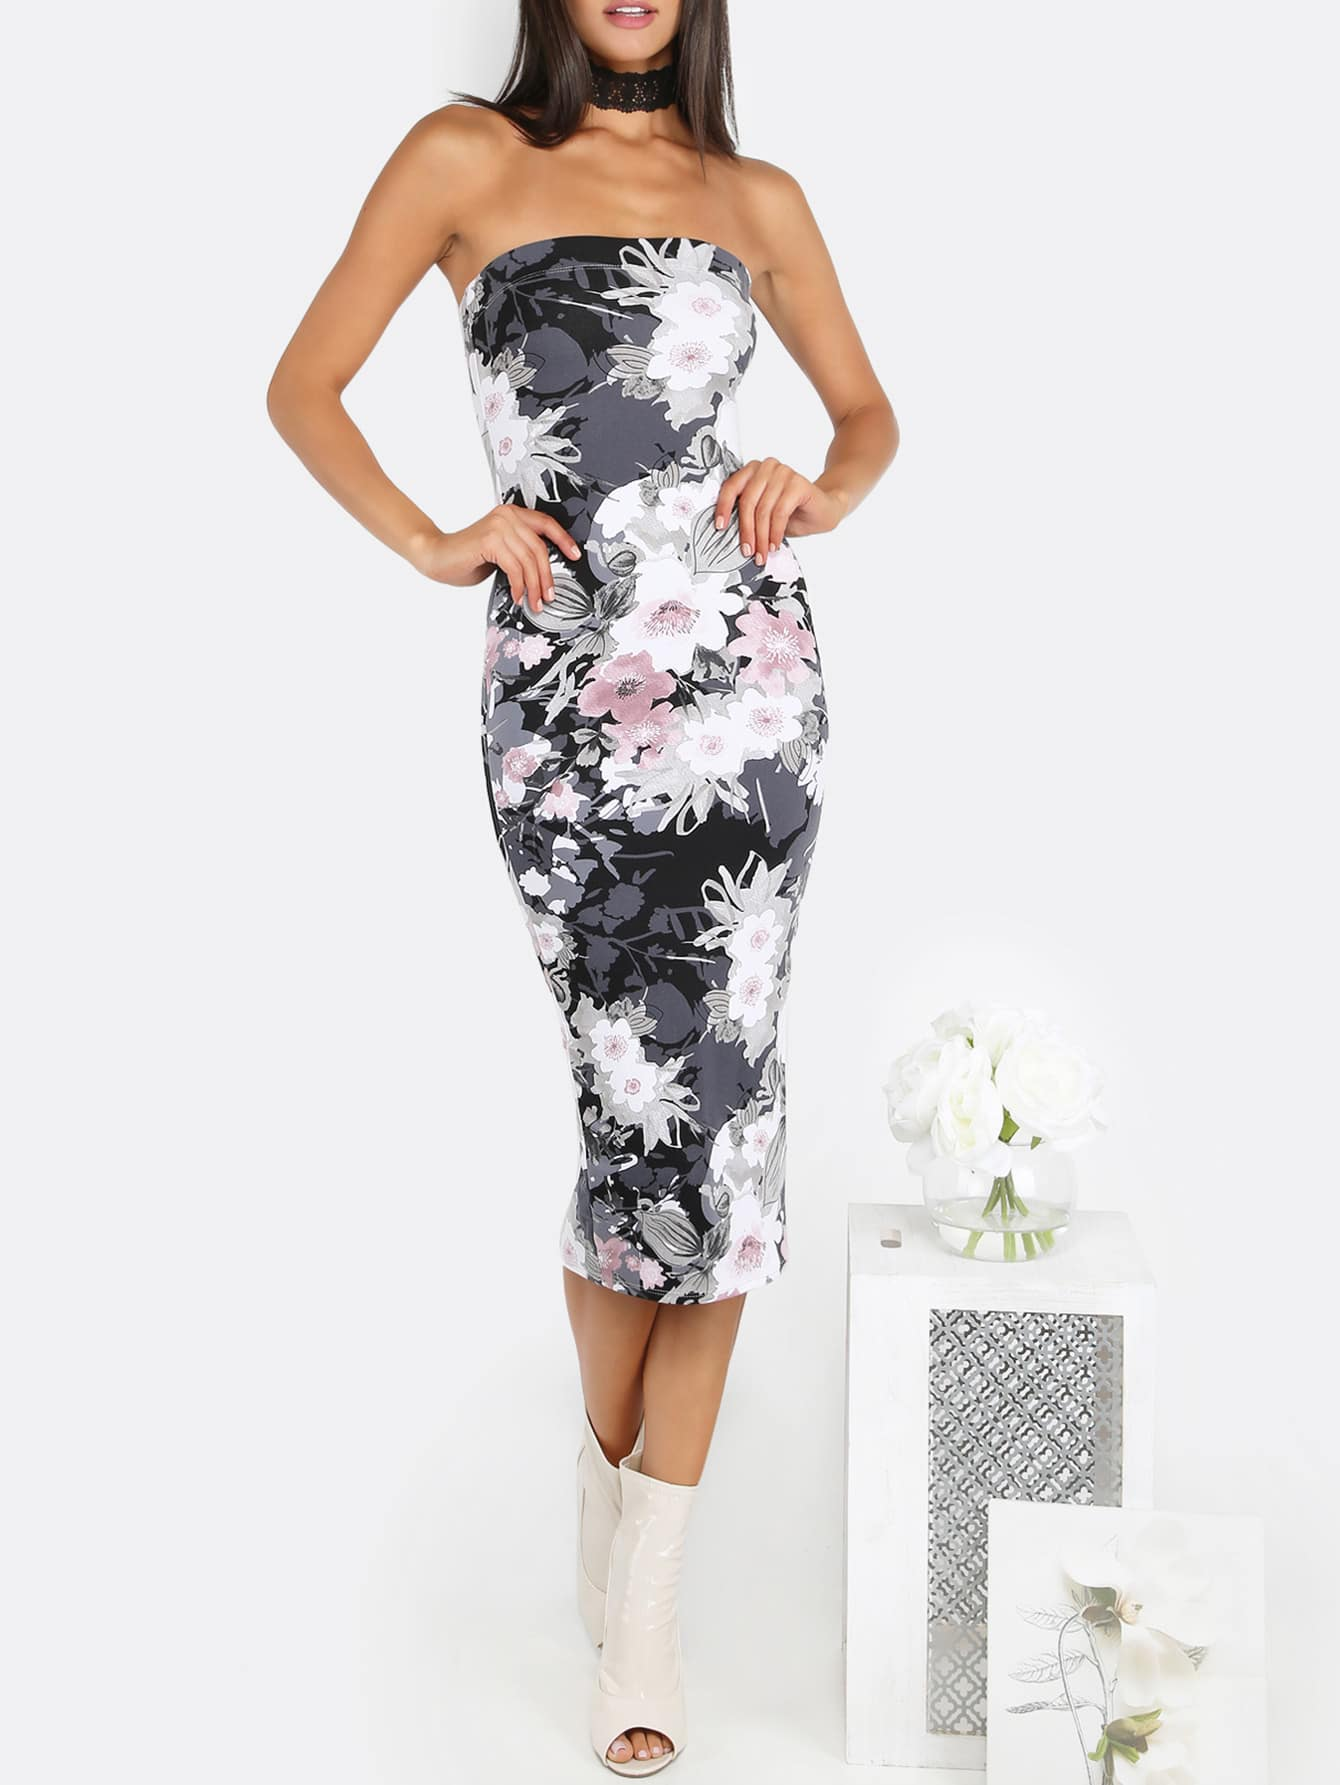 Floral Tube Top Midi Dress BLACKFloral Tube Top Midi Dress BLACK<br><br>color: Black<br>size: L,M,S,XS